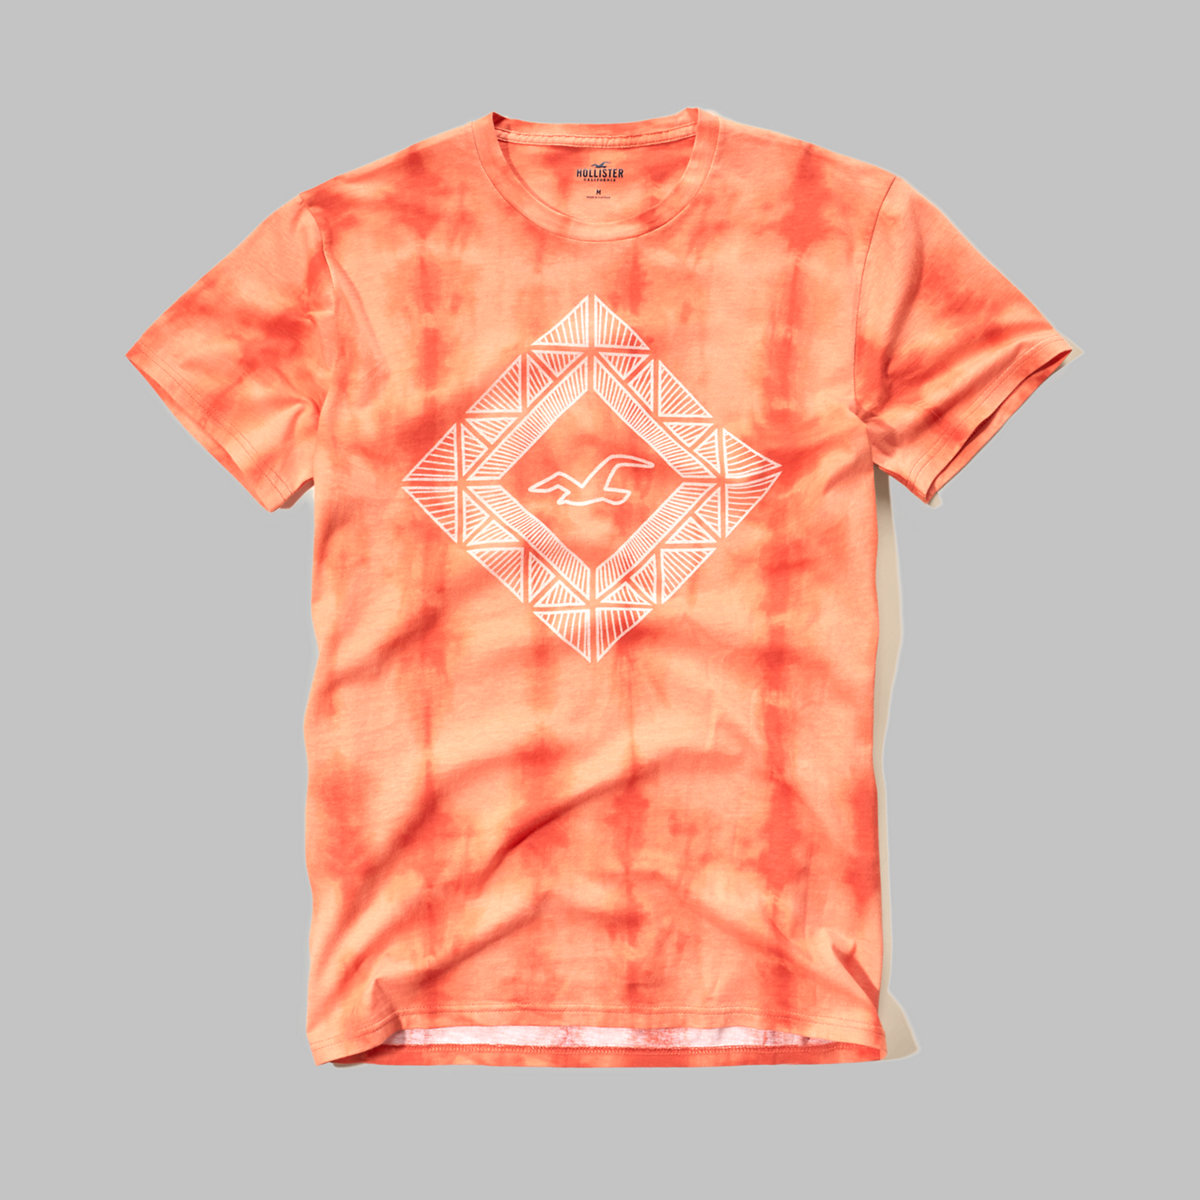 Washed Graphic Tee